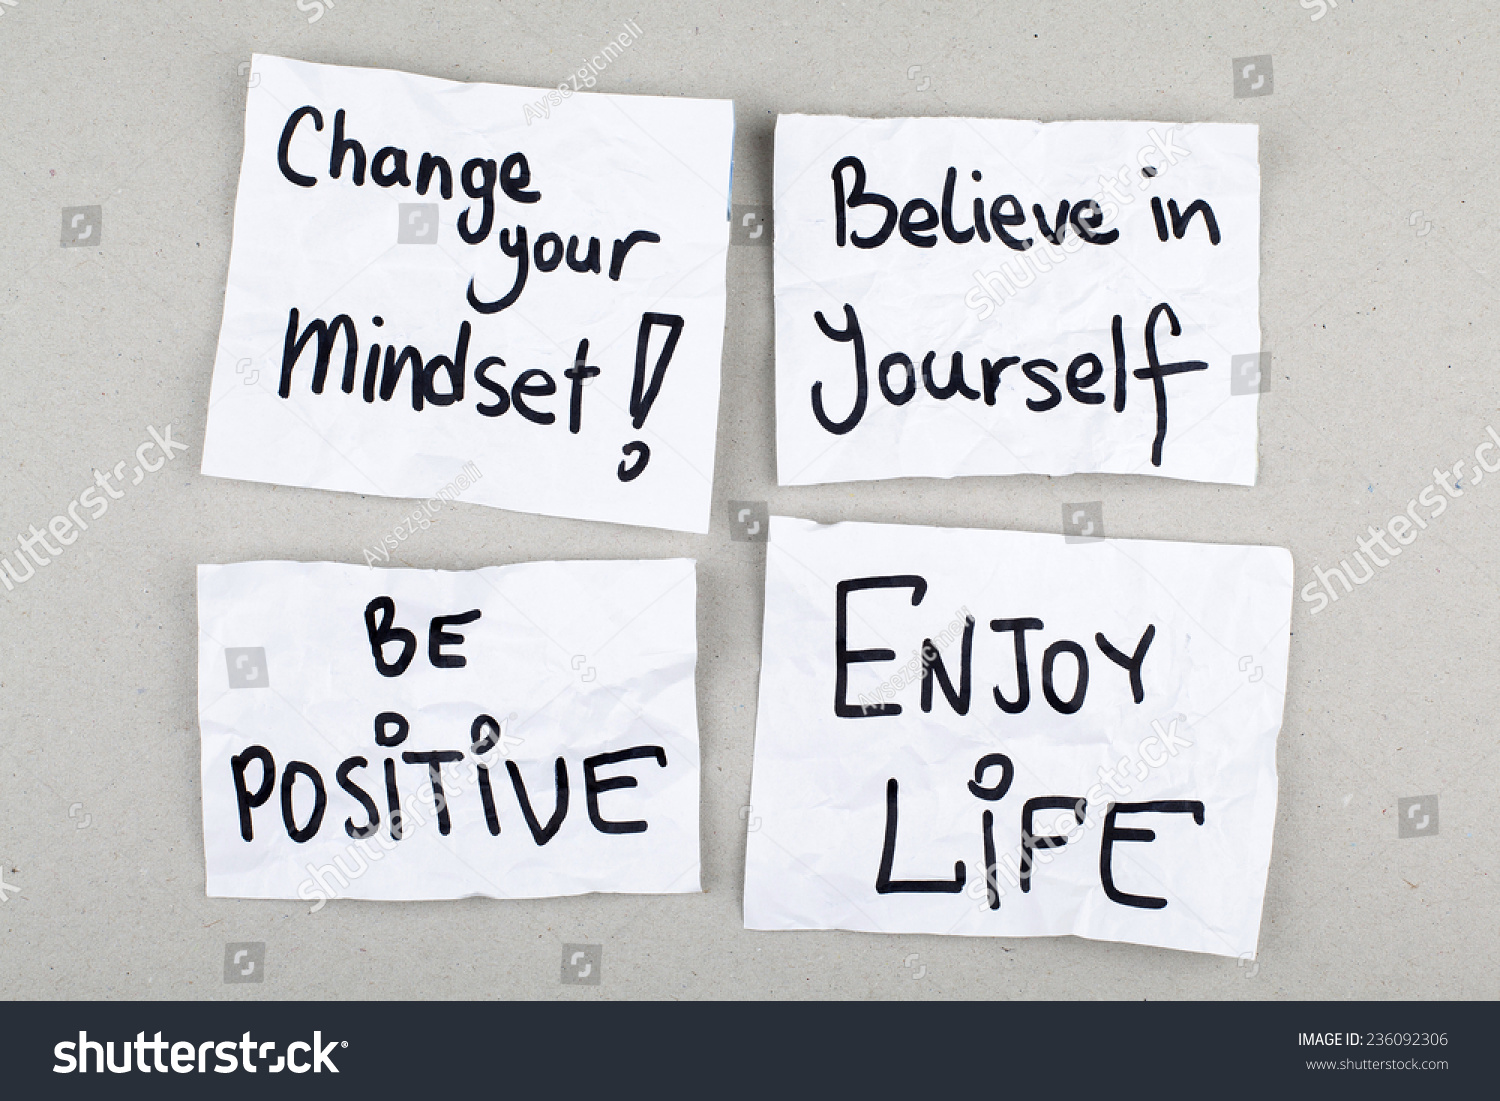 Positive Quotes About Change Magnificent Motivational Inspirational Positive Quotes Phrases Change Stock